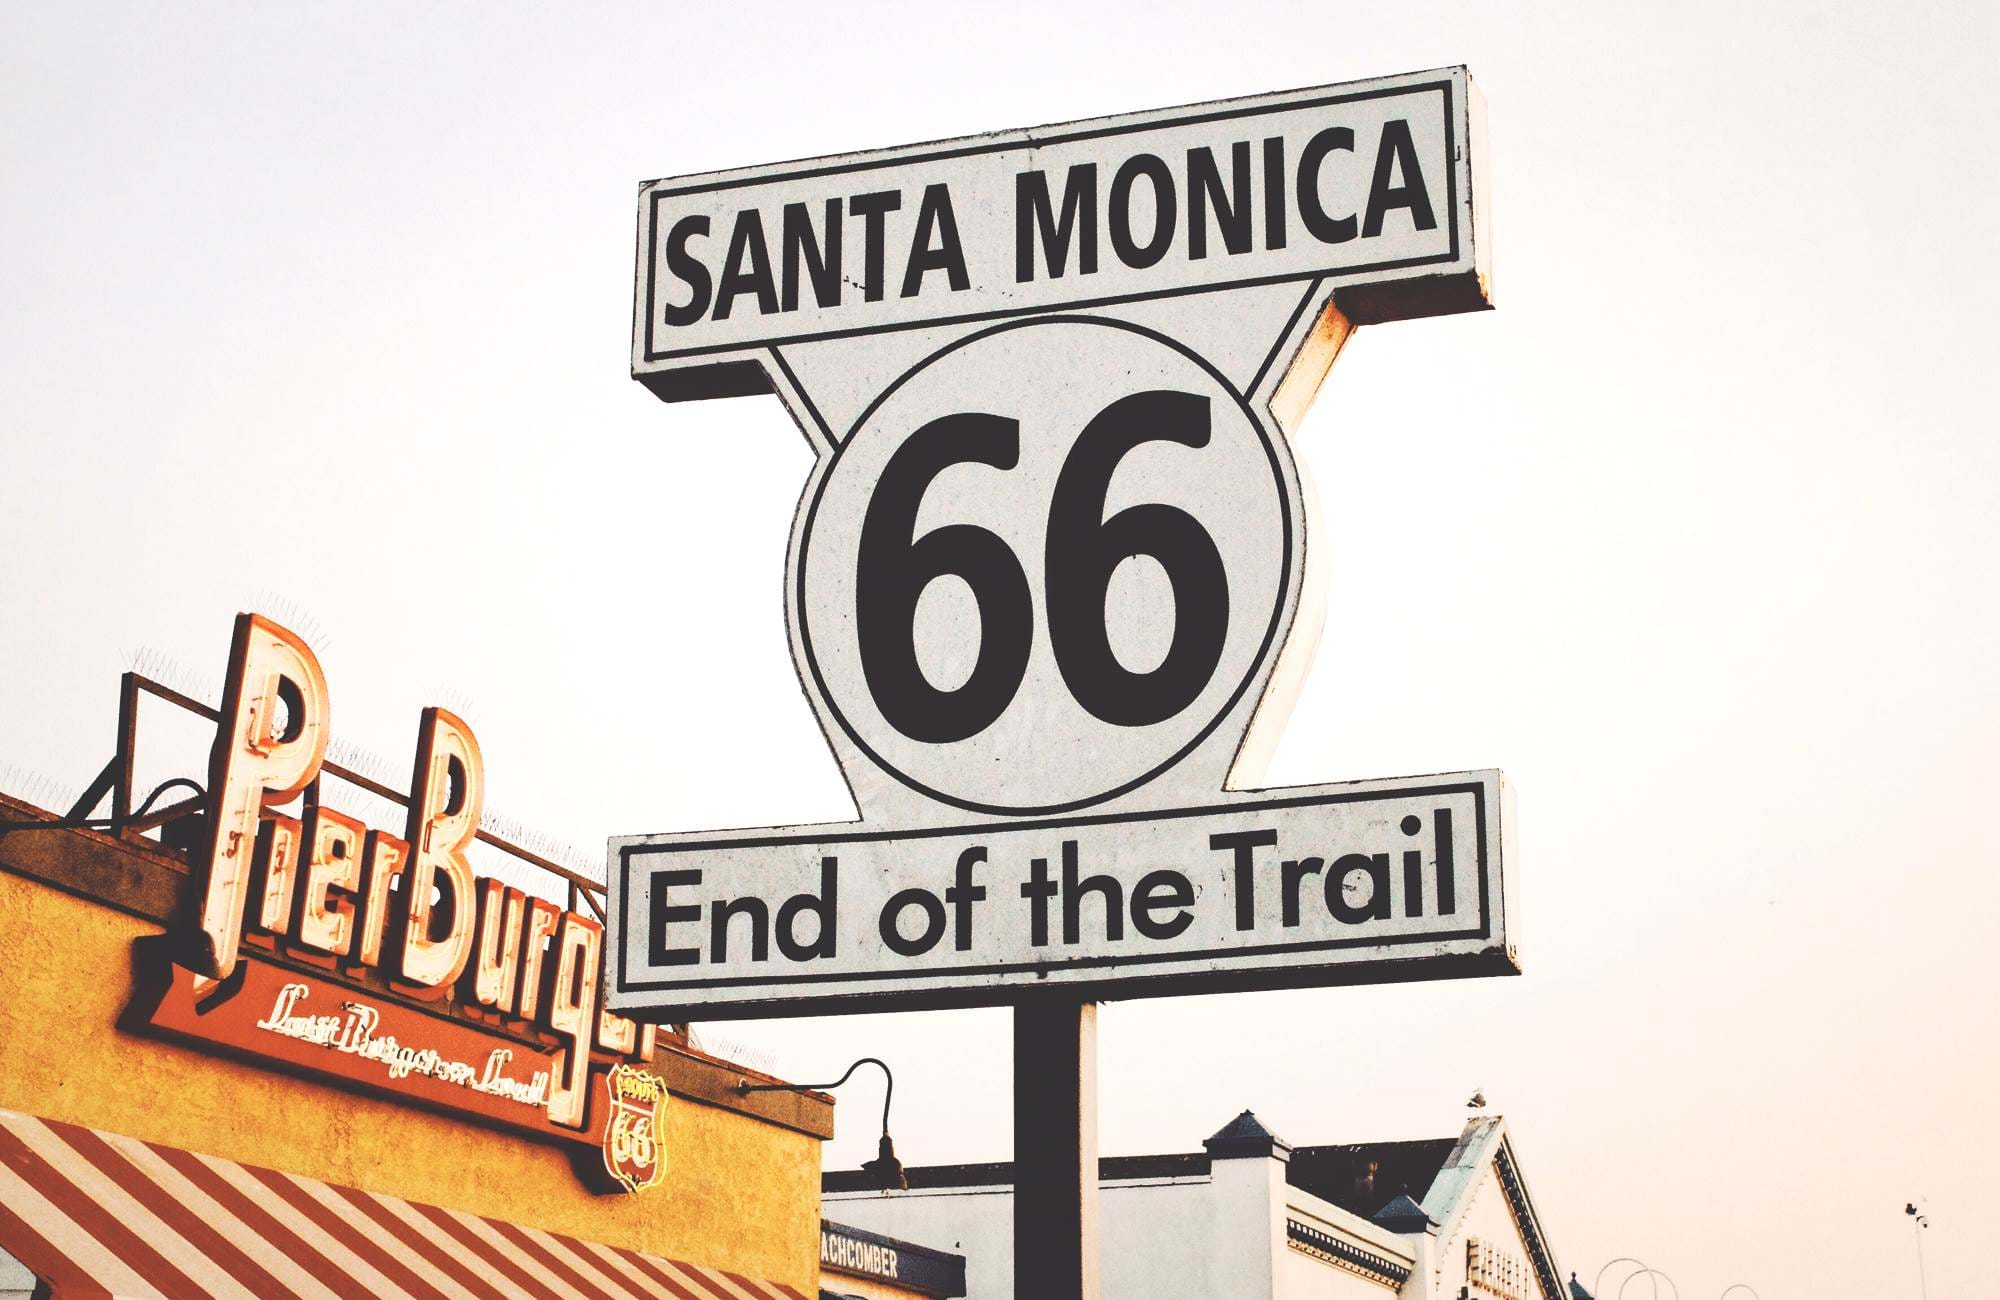 Santa Monica skilt i USA med End of the Trail